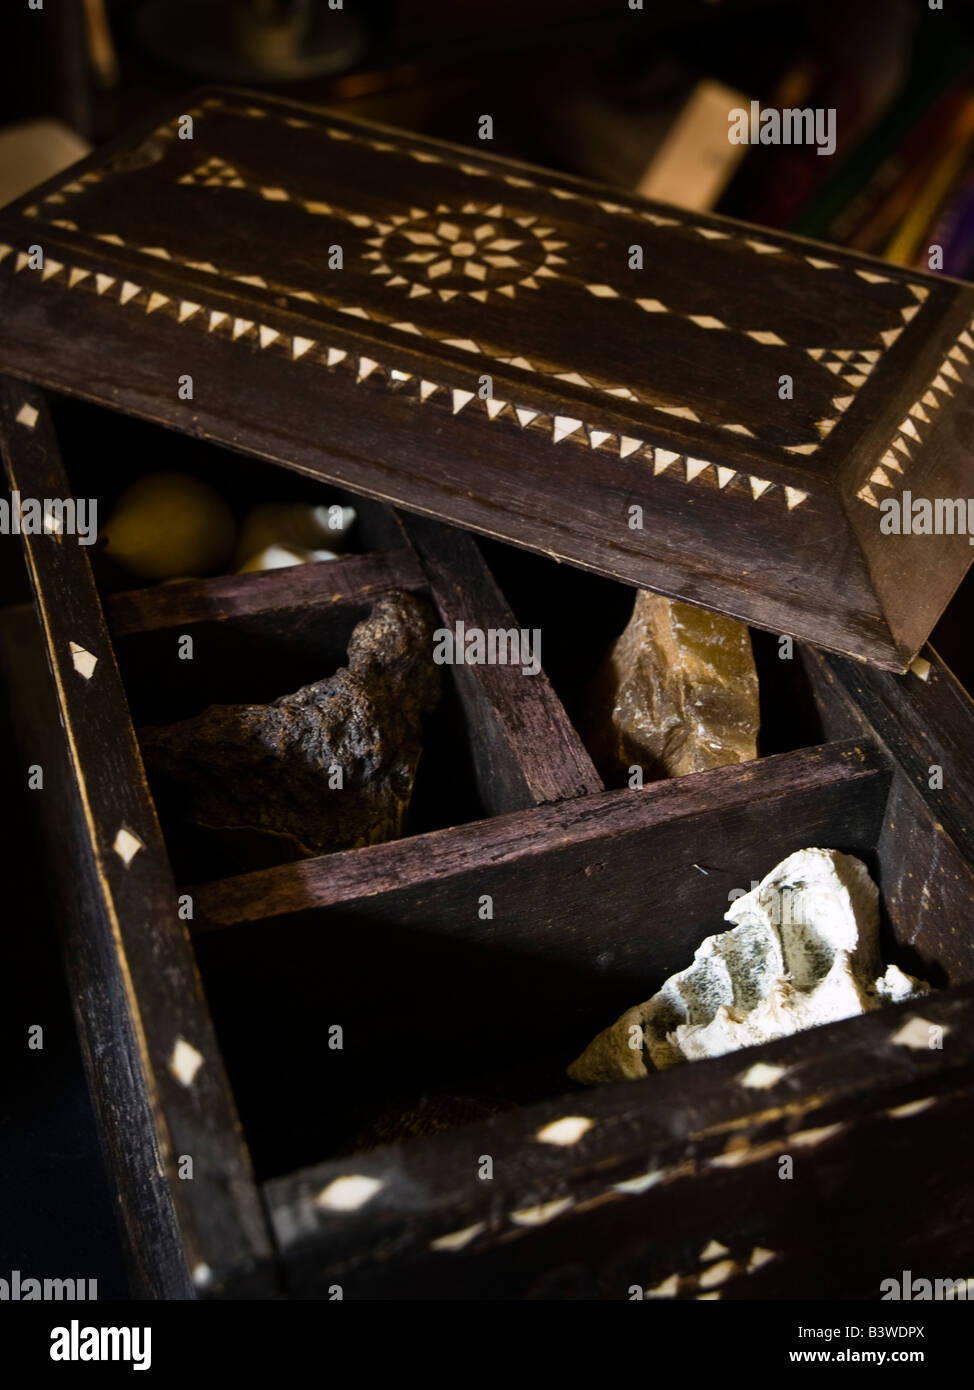 Ornate wooden box containing shells, stones and objet trouve - Stock Image